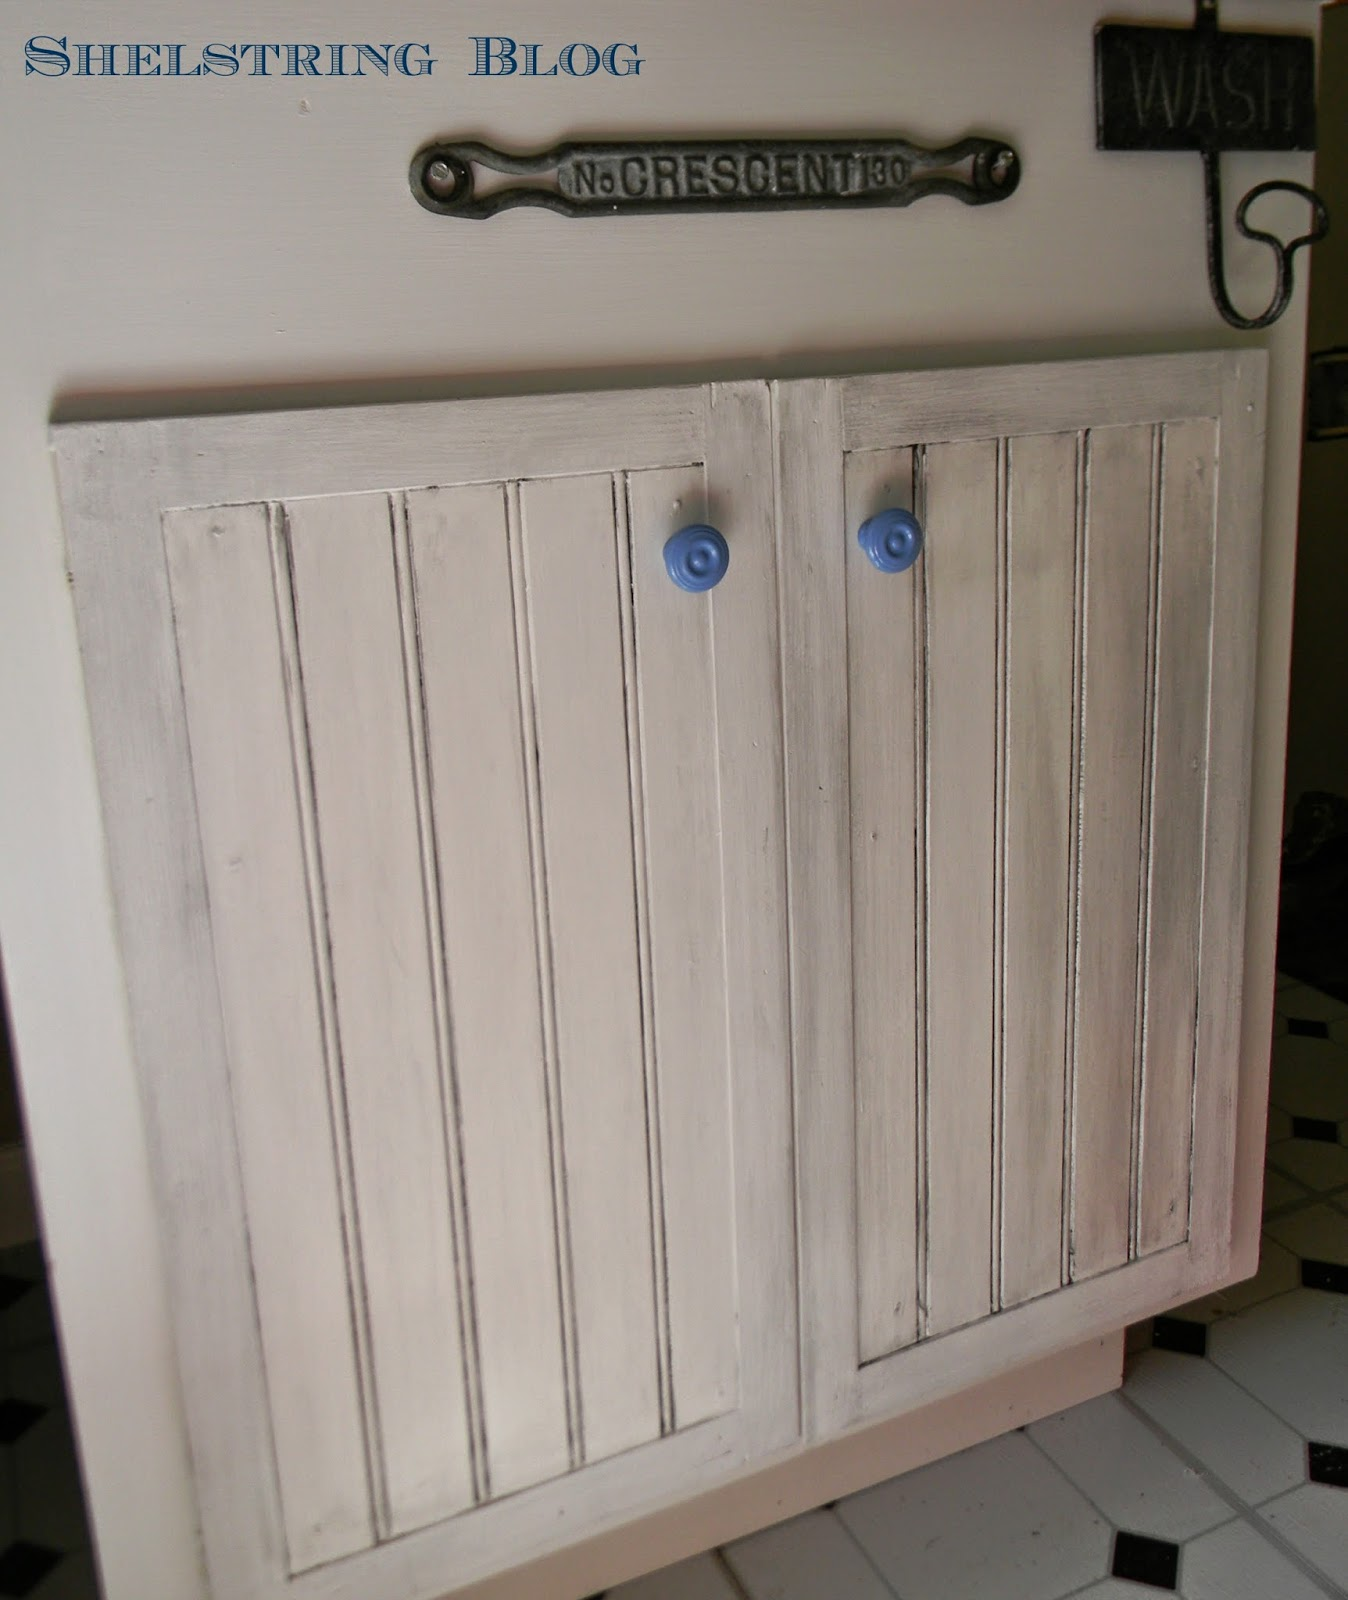 Shelstring Blog: No Fail Painted Cabinet Staining Technique